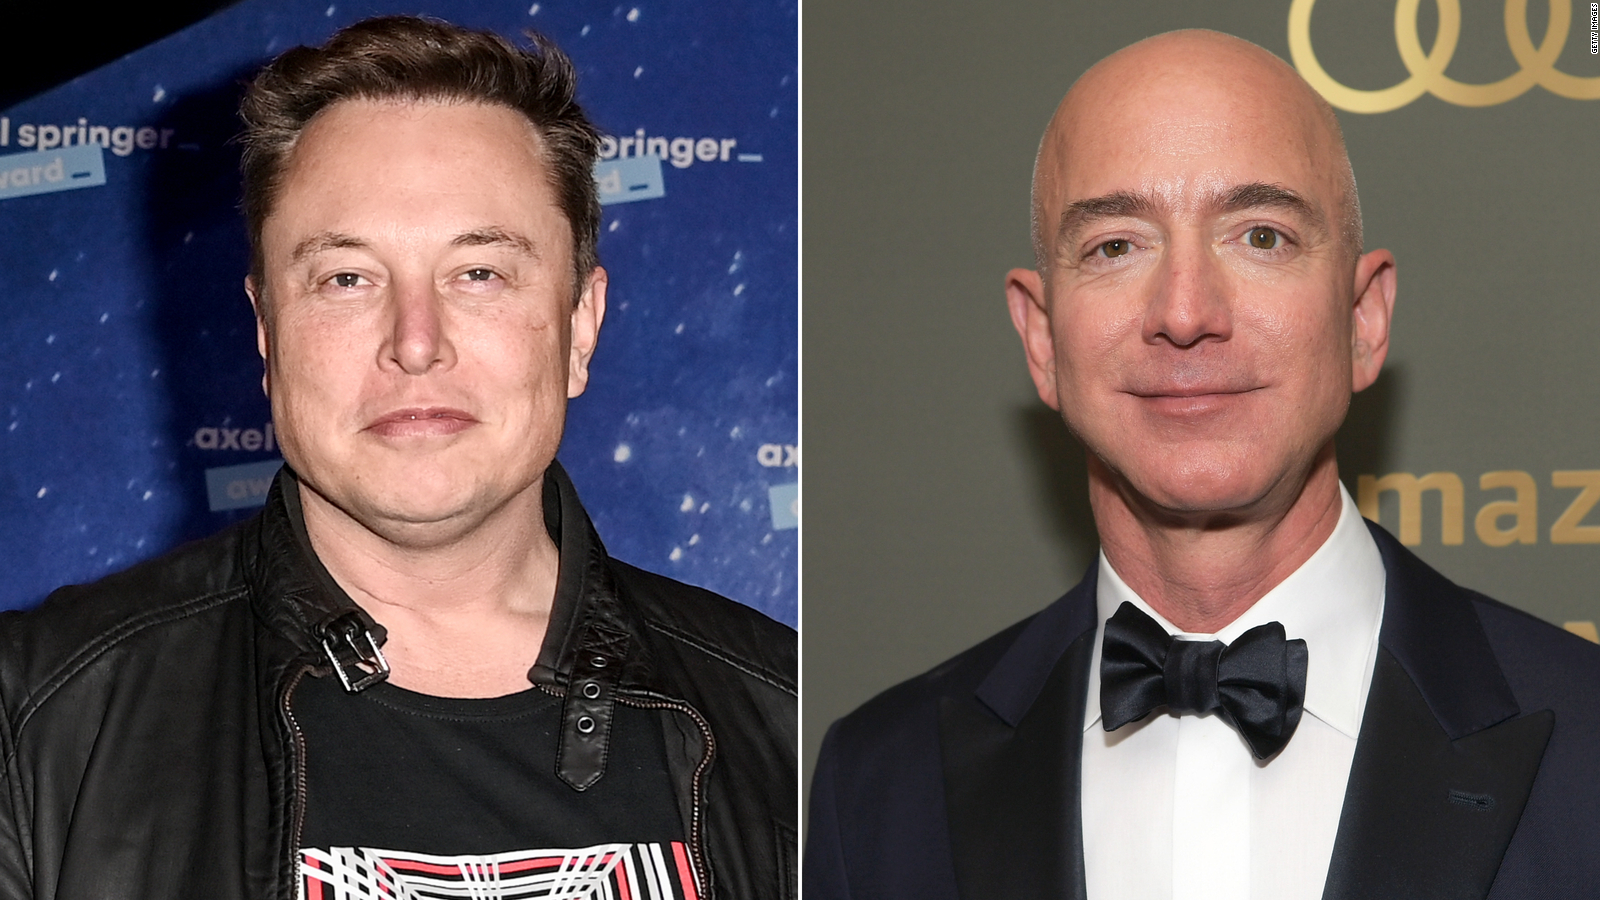 For $ 26 billion, Jeff Bezos wins Elon Musk as the richest man, according to Forbes |  Video